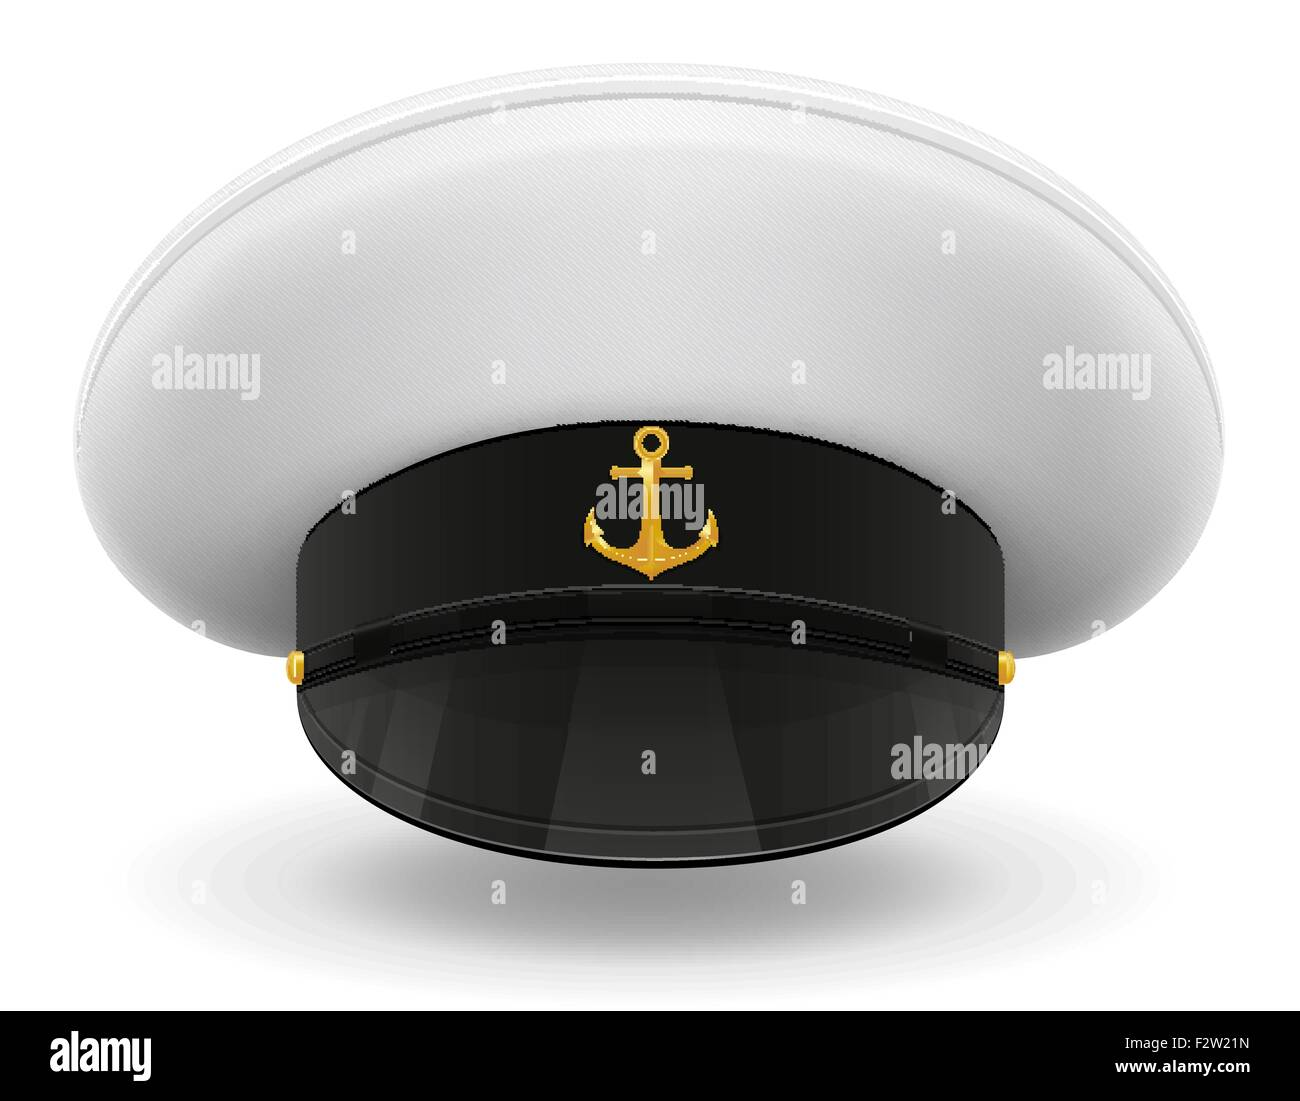 Sailor stock photos illustrations and vector art - Stock Vector Professional Uniform Cap Or Captain Sailor Vector Illustration Isolated On White Background